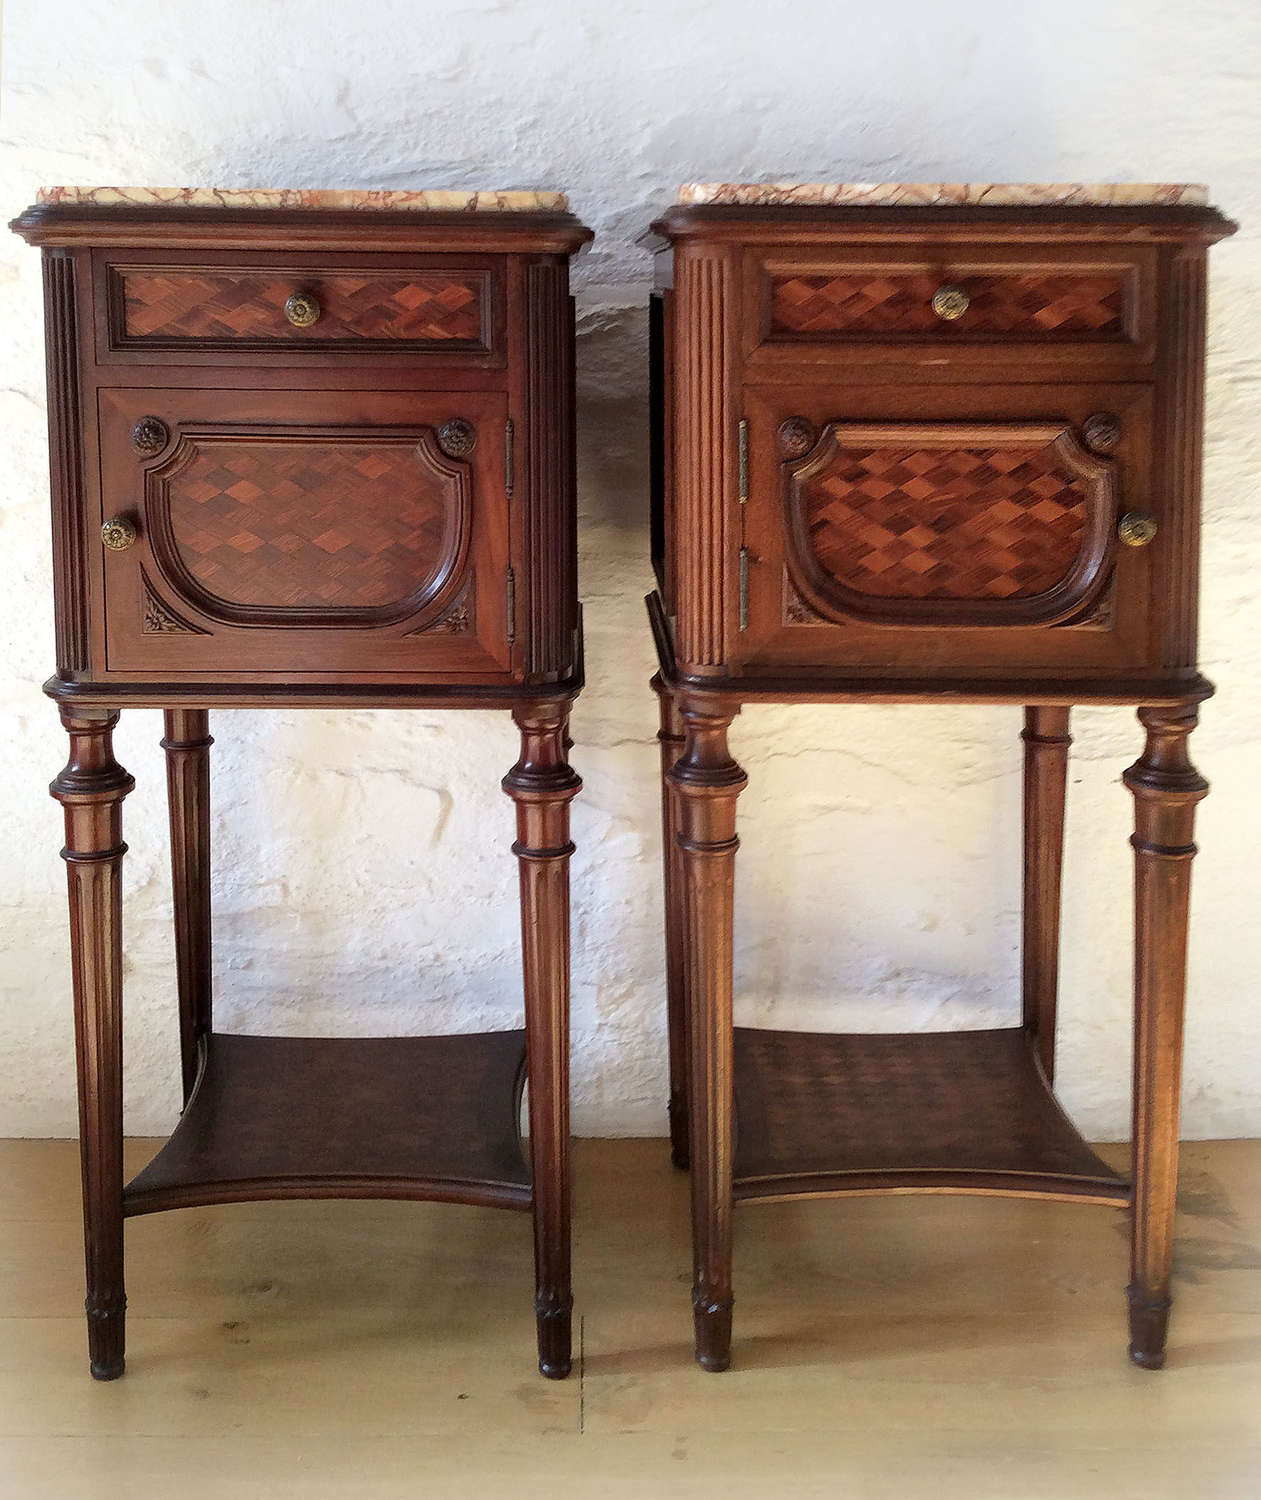 Pair of 19th Century Louis XVI style Bedsides